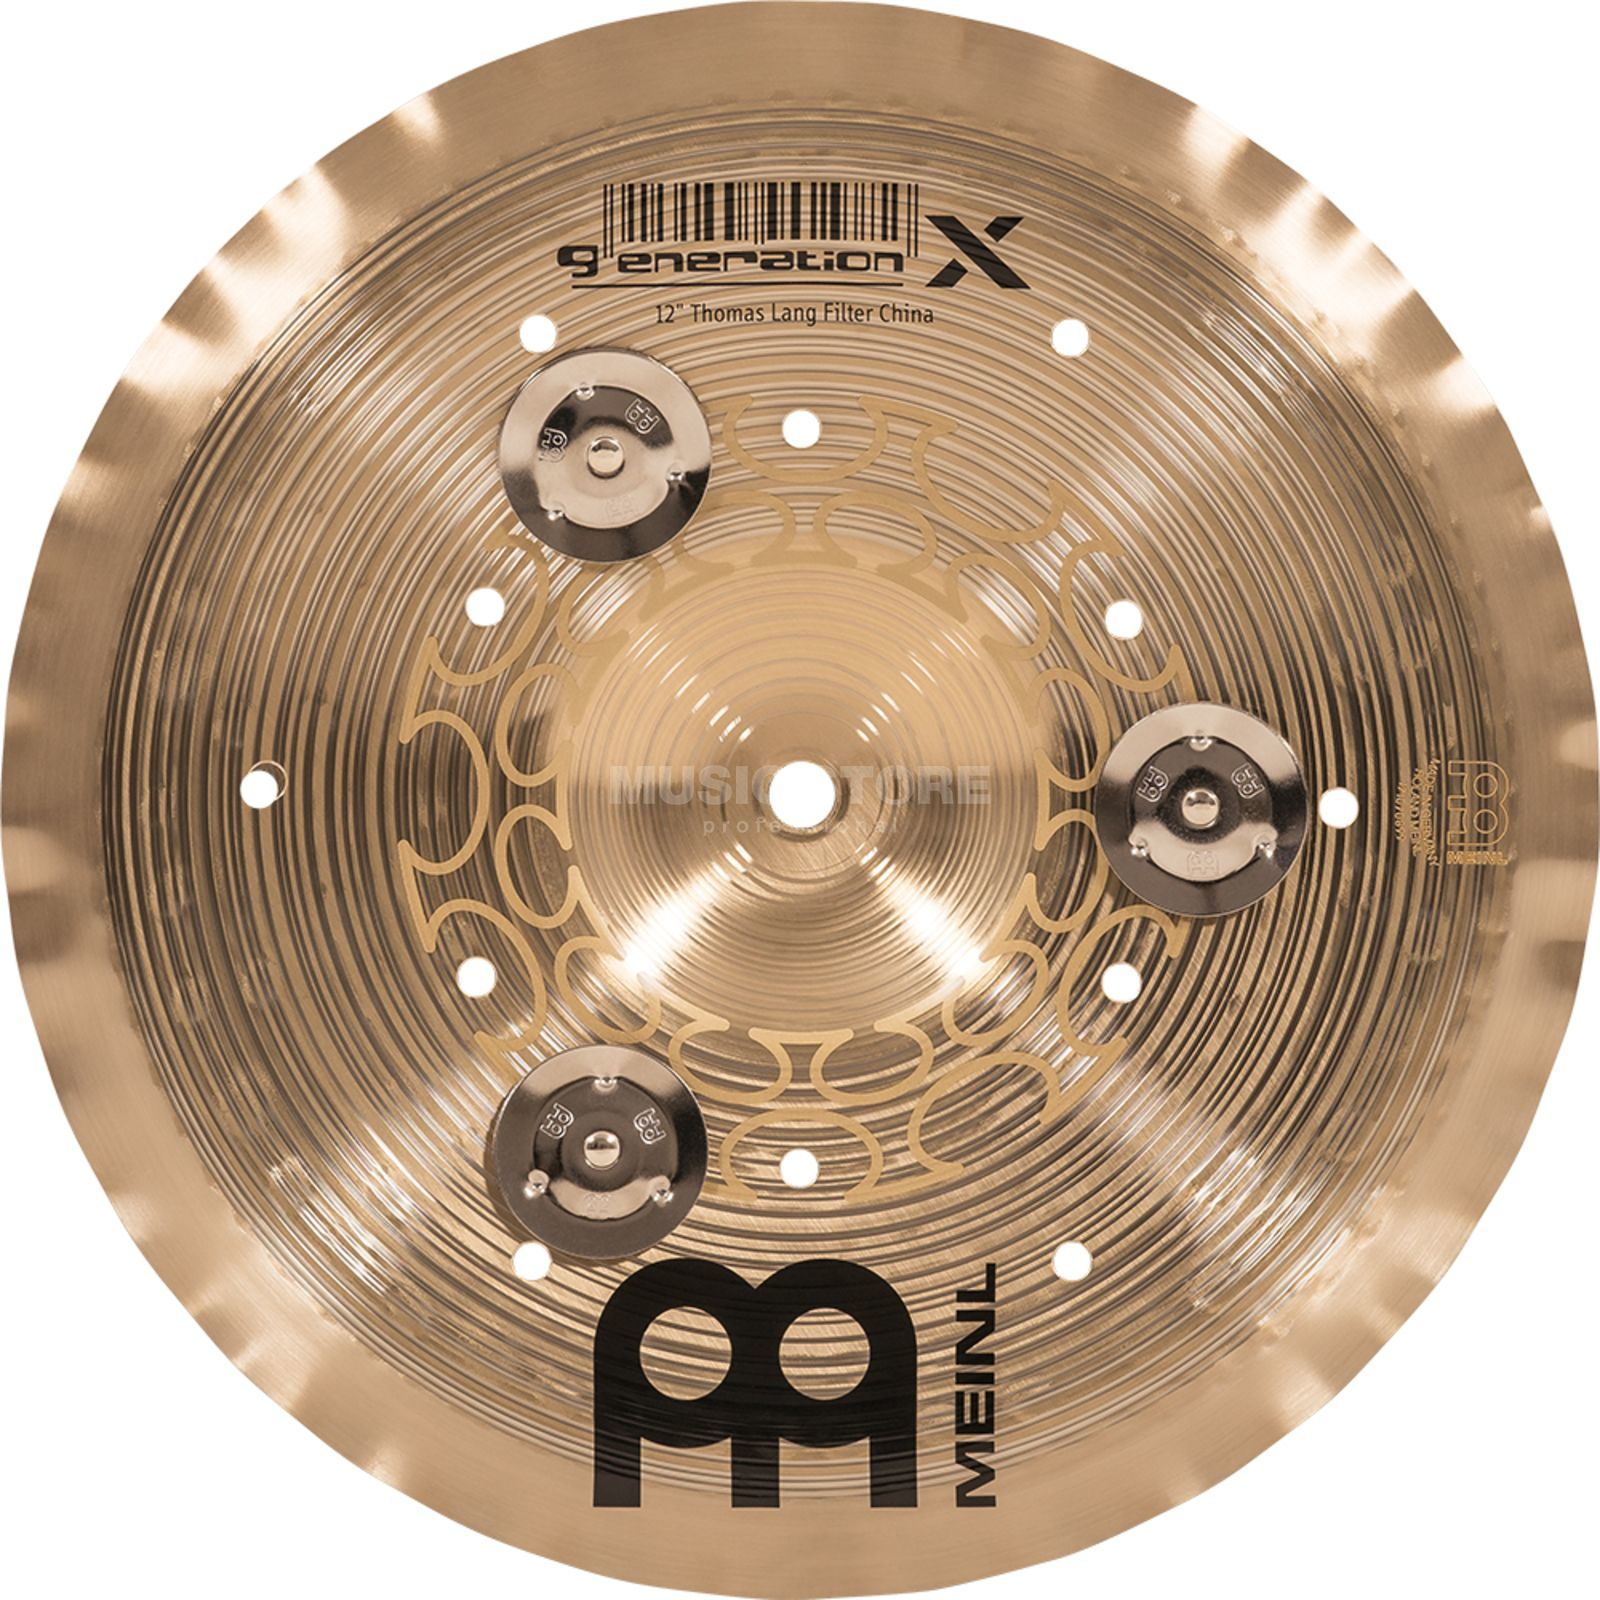 "Meinl Generation X Filter China 12"" GX-12FCH-J, with Jingles Produktbild"